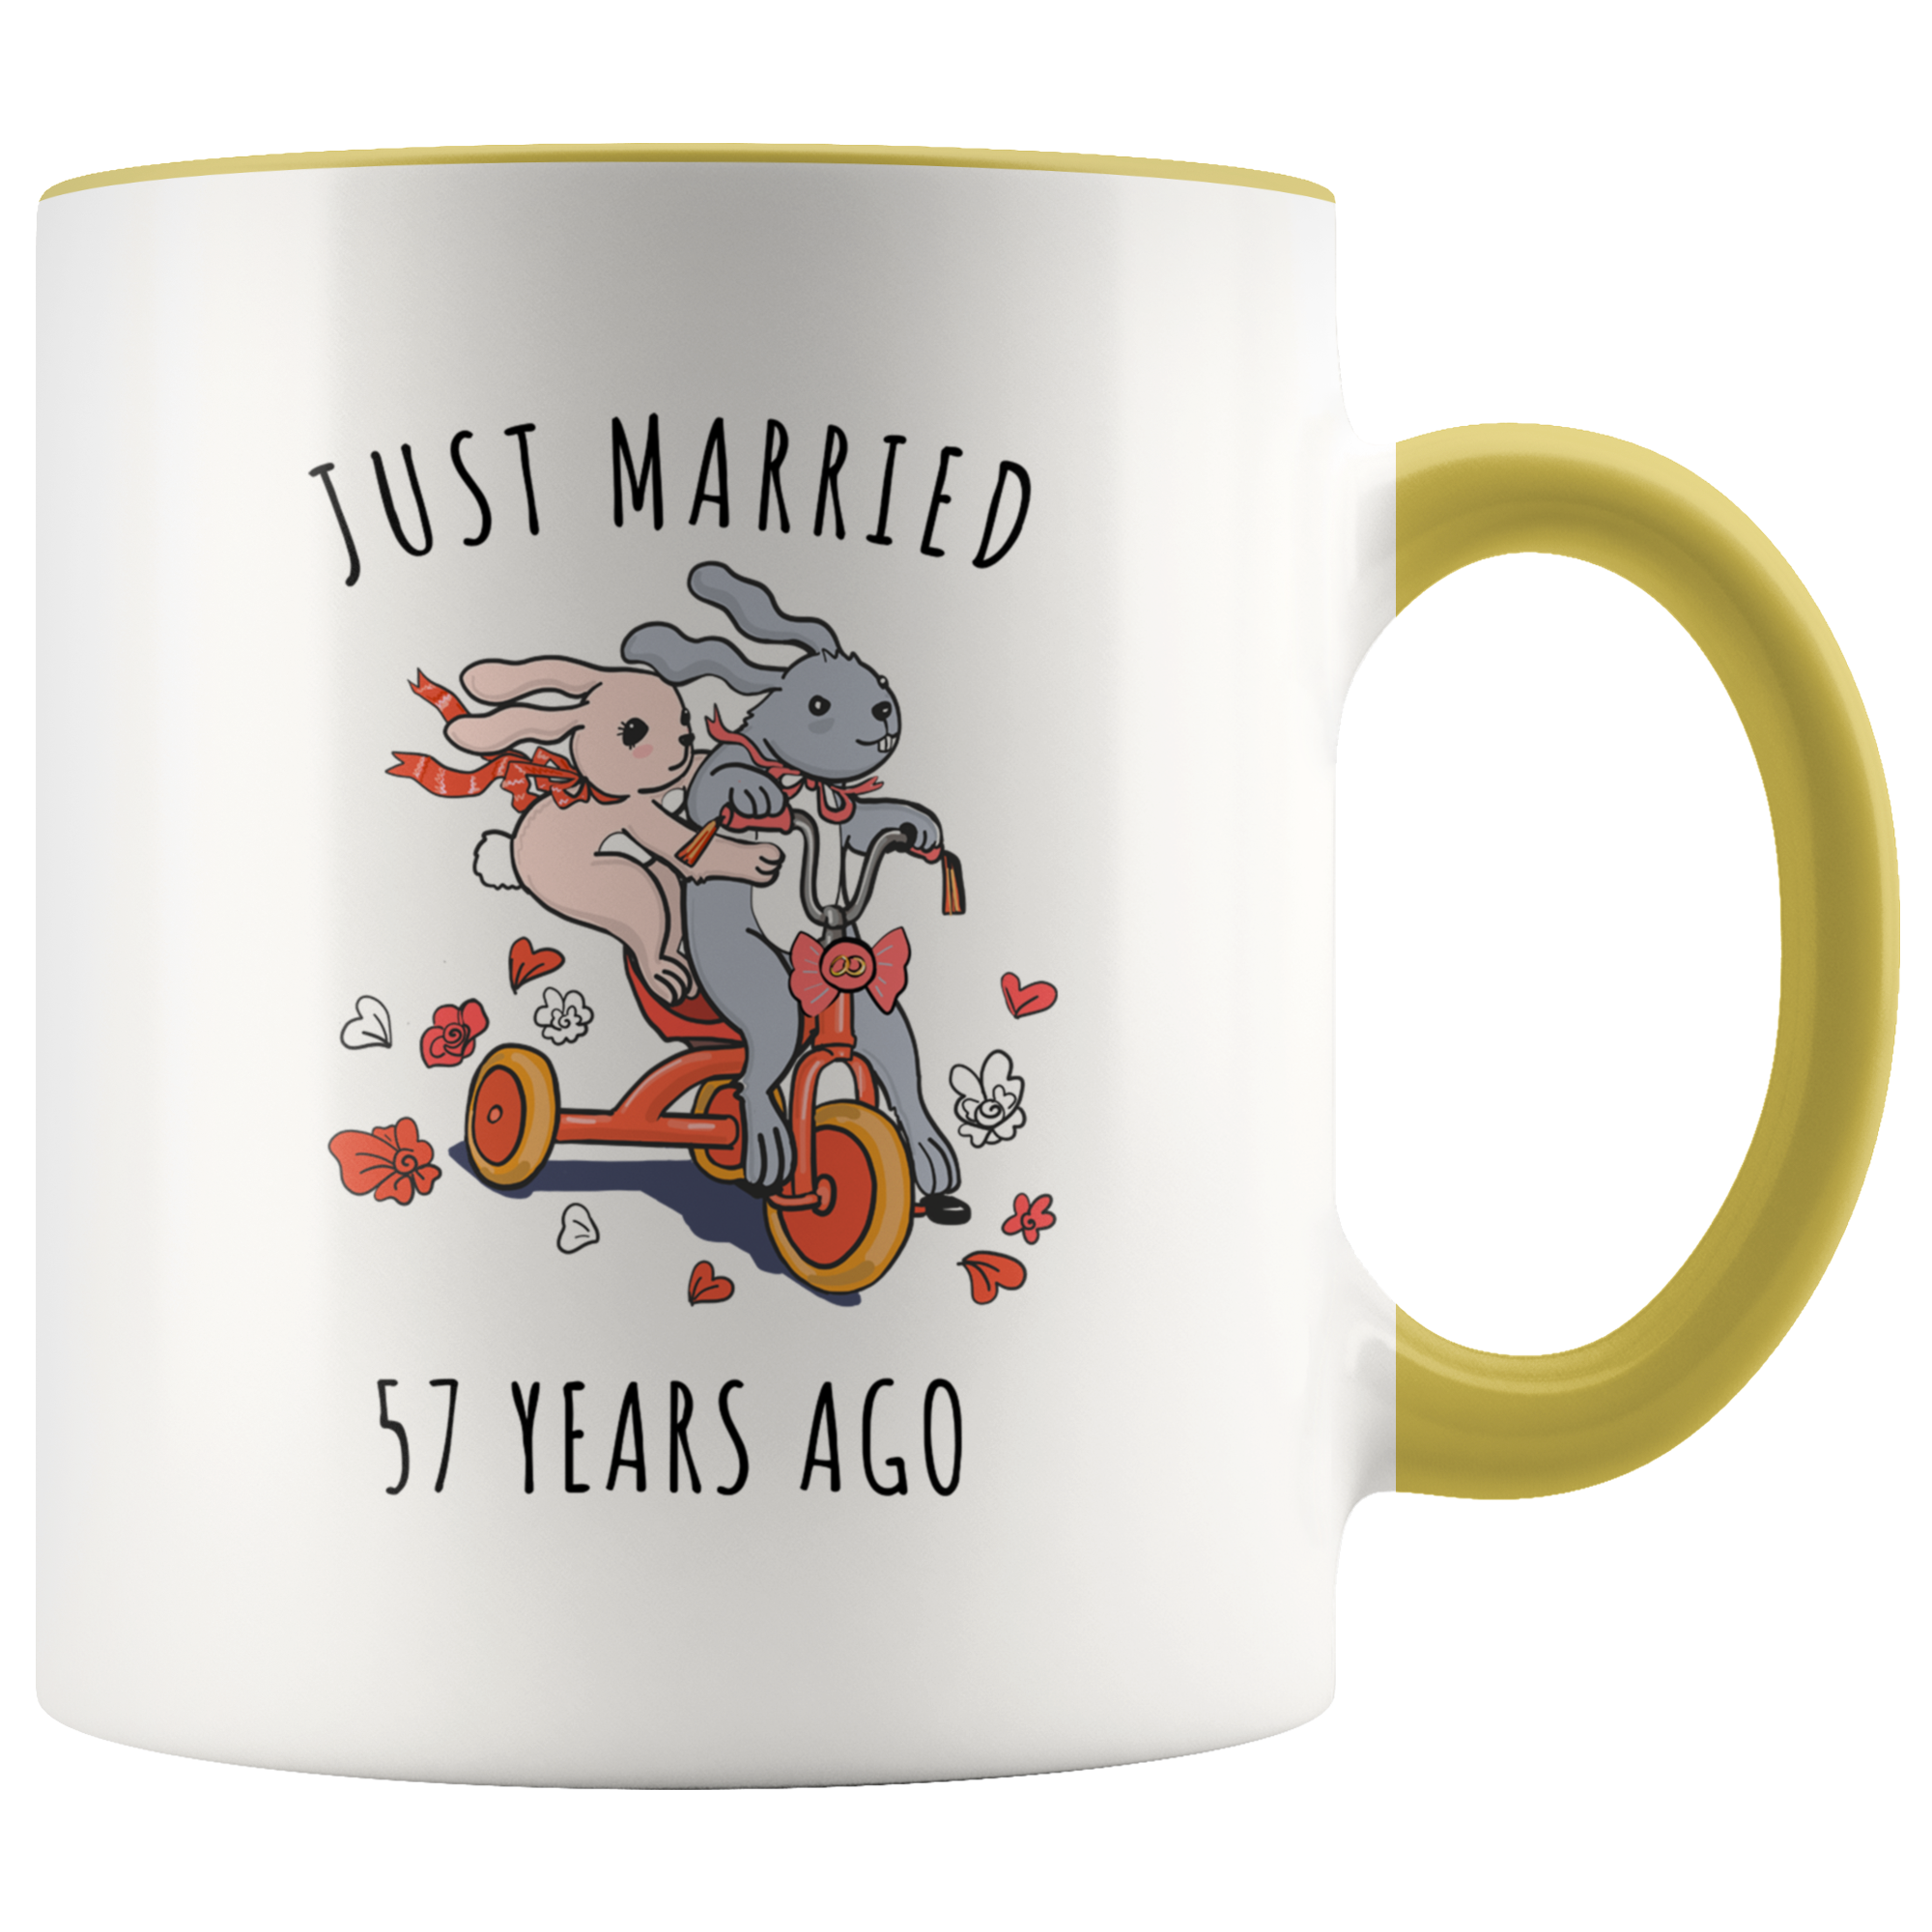 Just Married 57 Years Ago - 57th Wedding Anniversary Gift Accent Mug